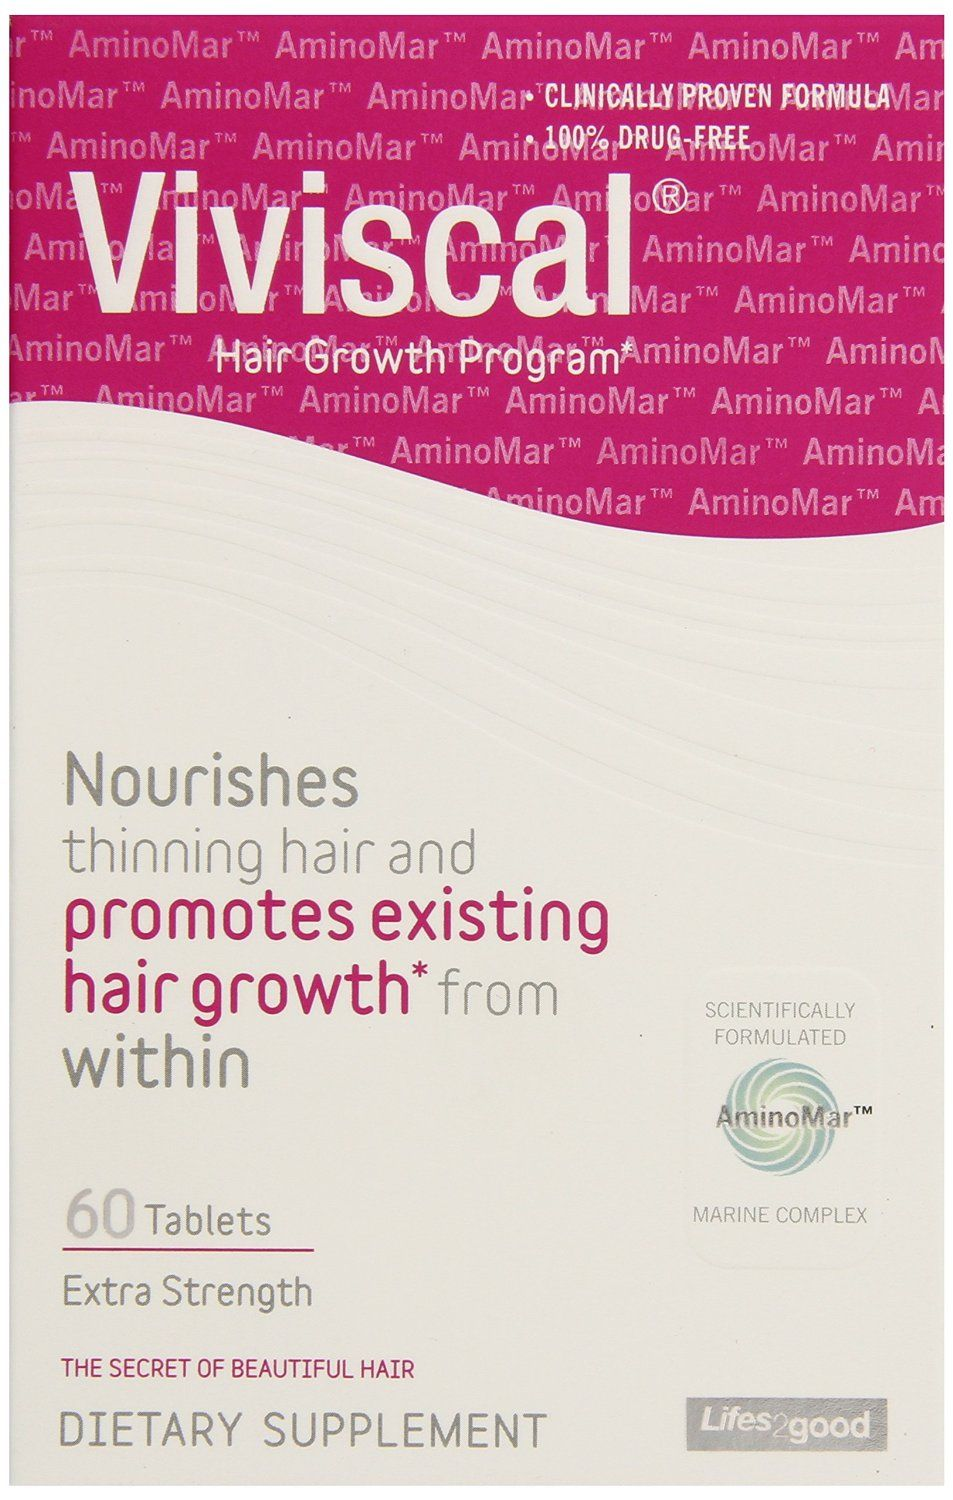 Viviscal Reviews, Photos, Ingredients